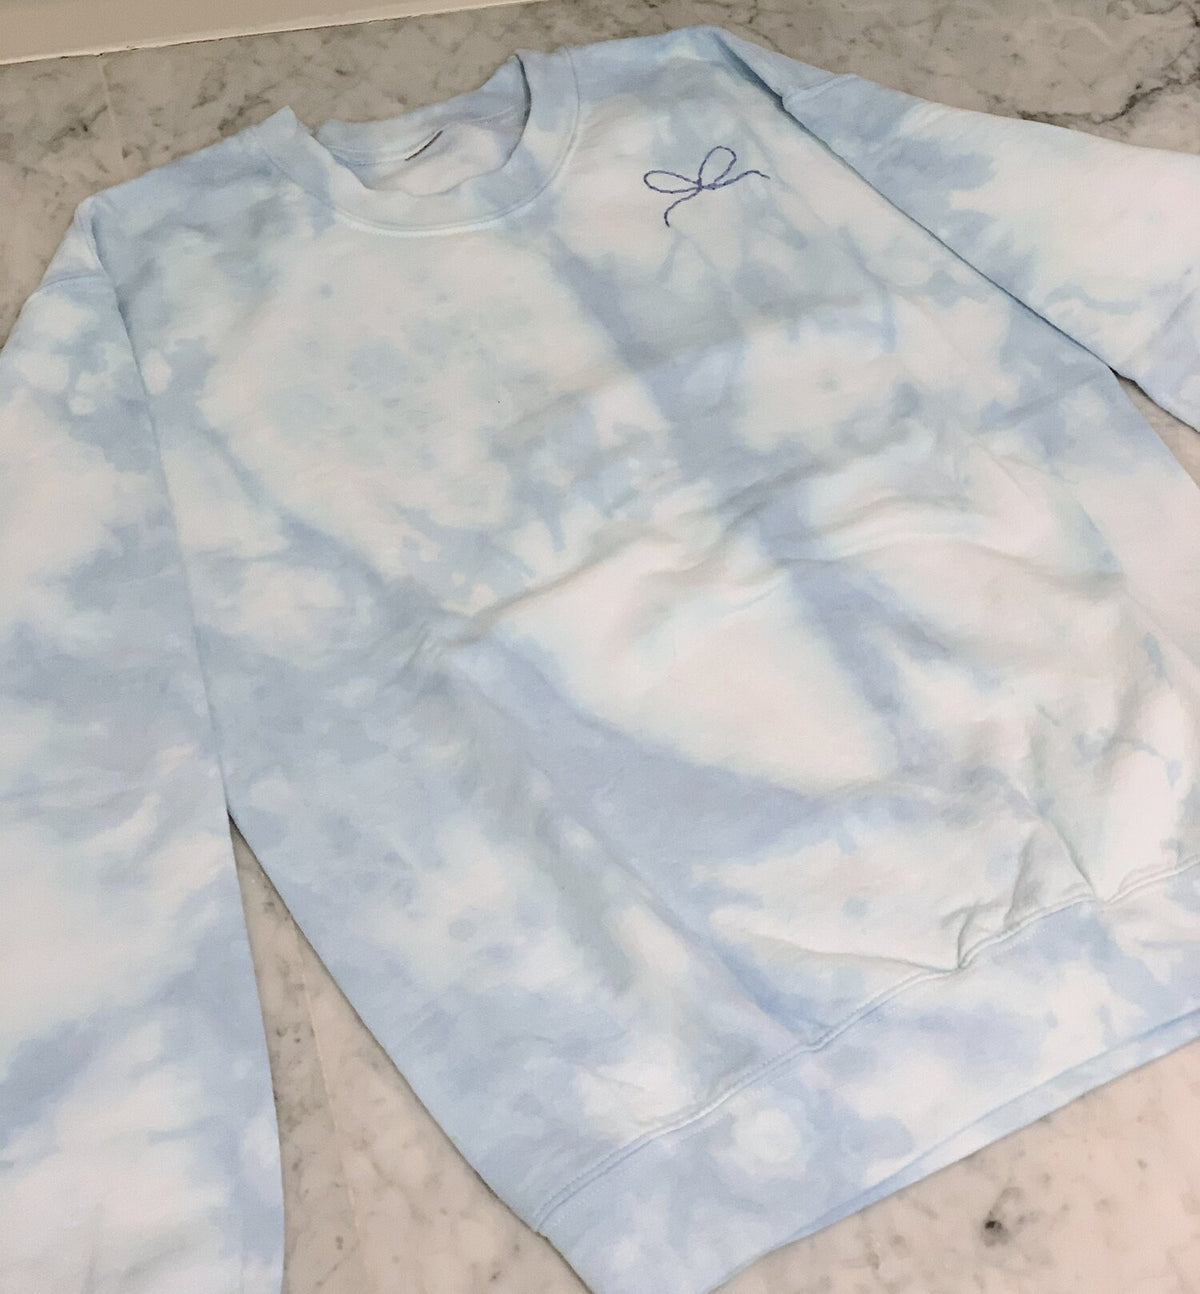 TIE-DYE BLUE ADULT SWEATSHIRT, Hand Embroidered Bow